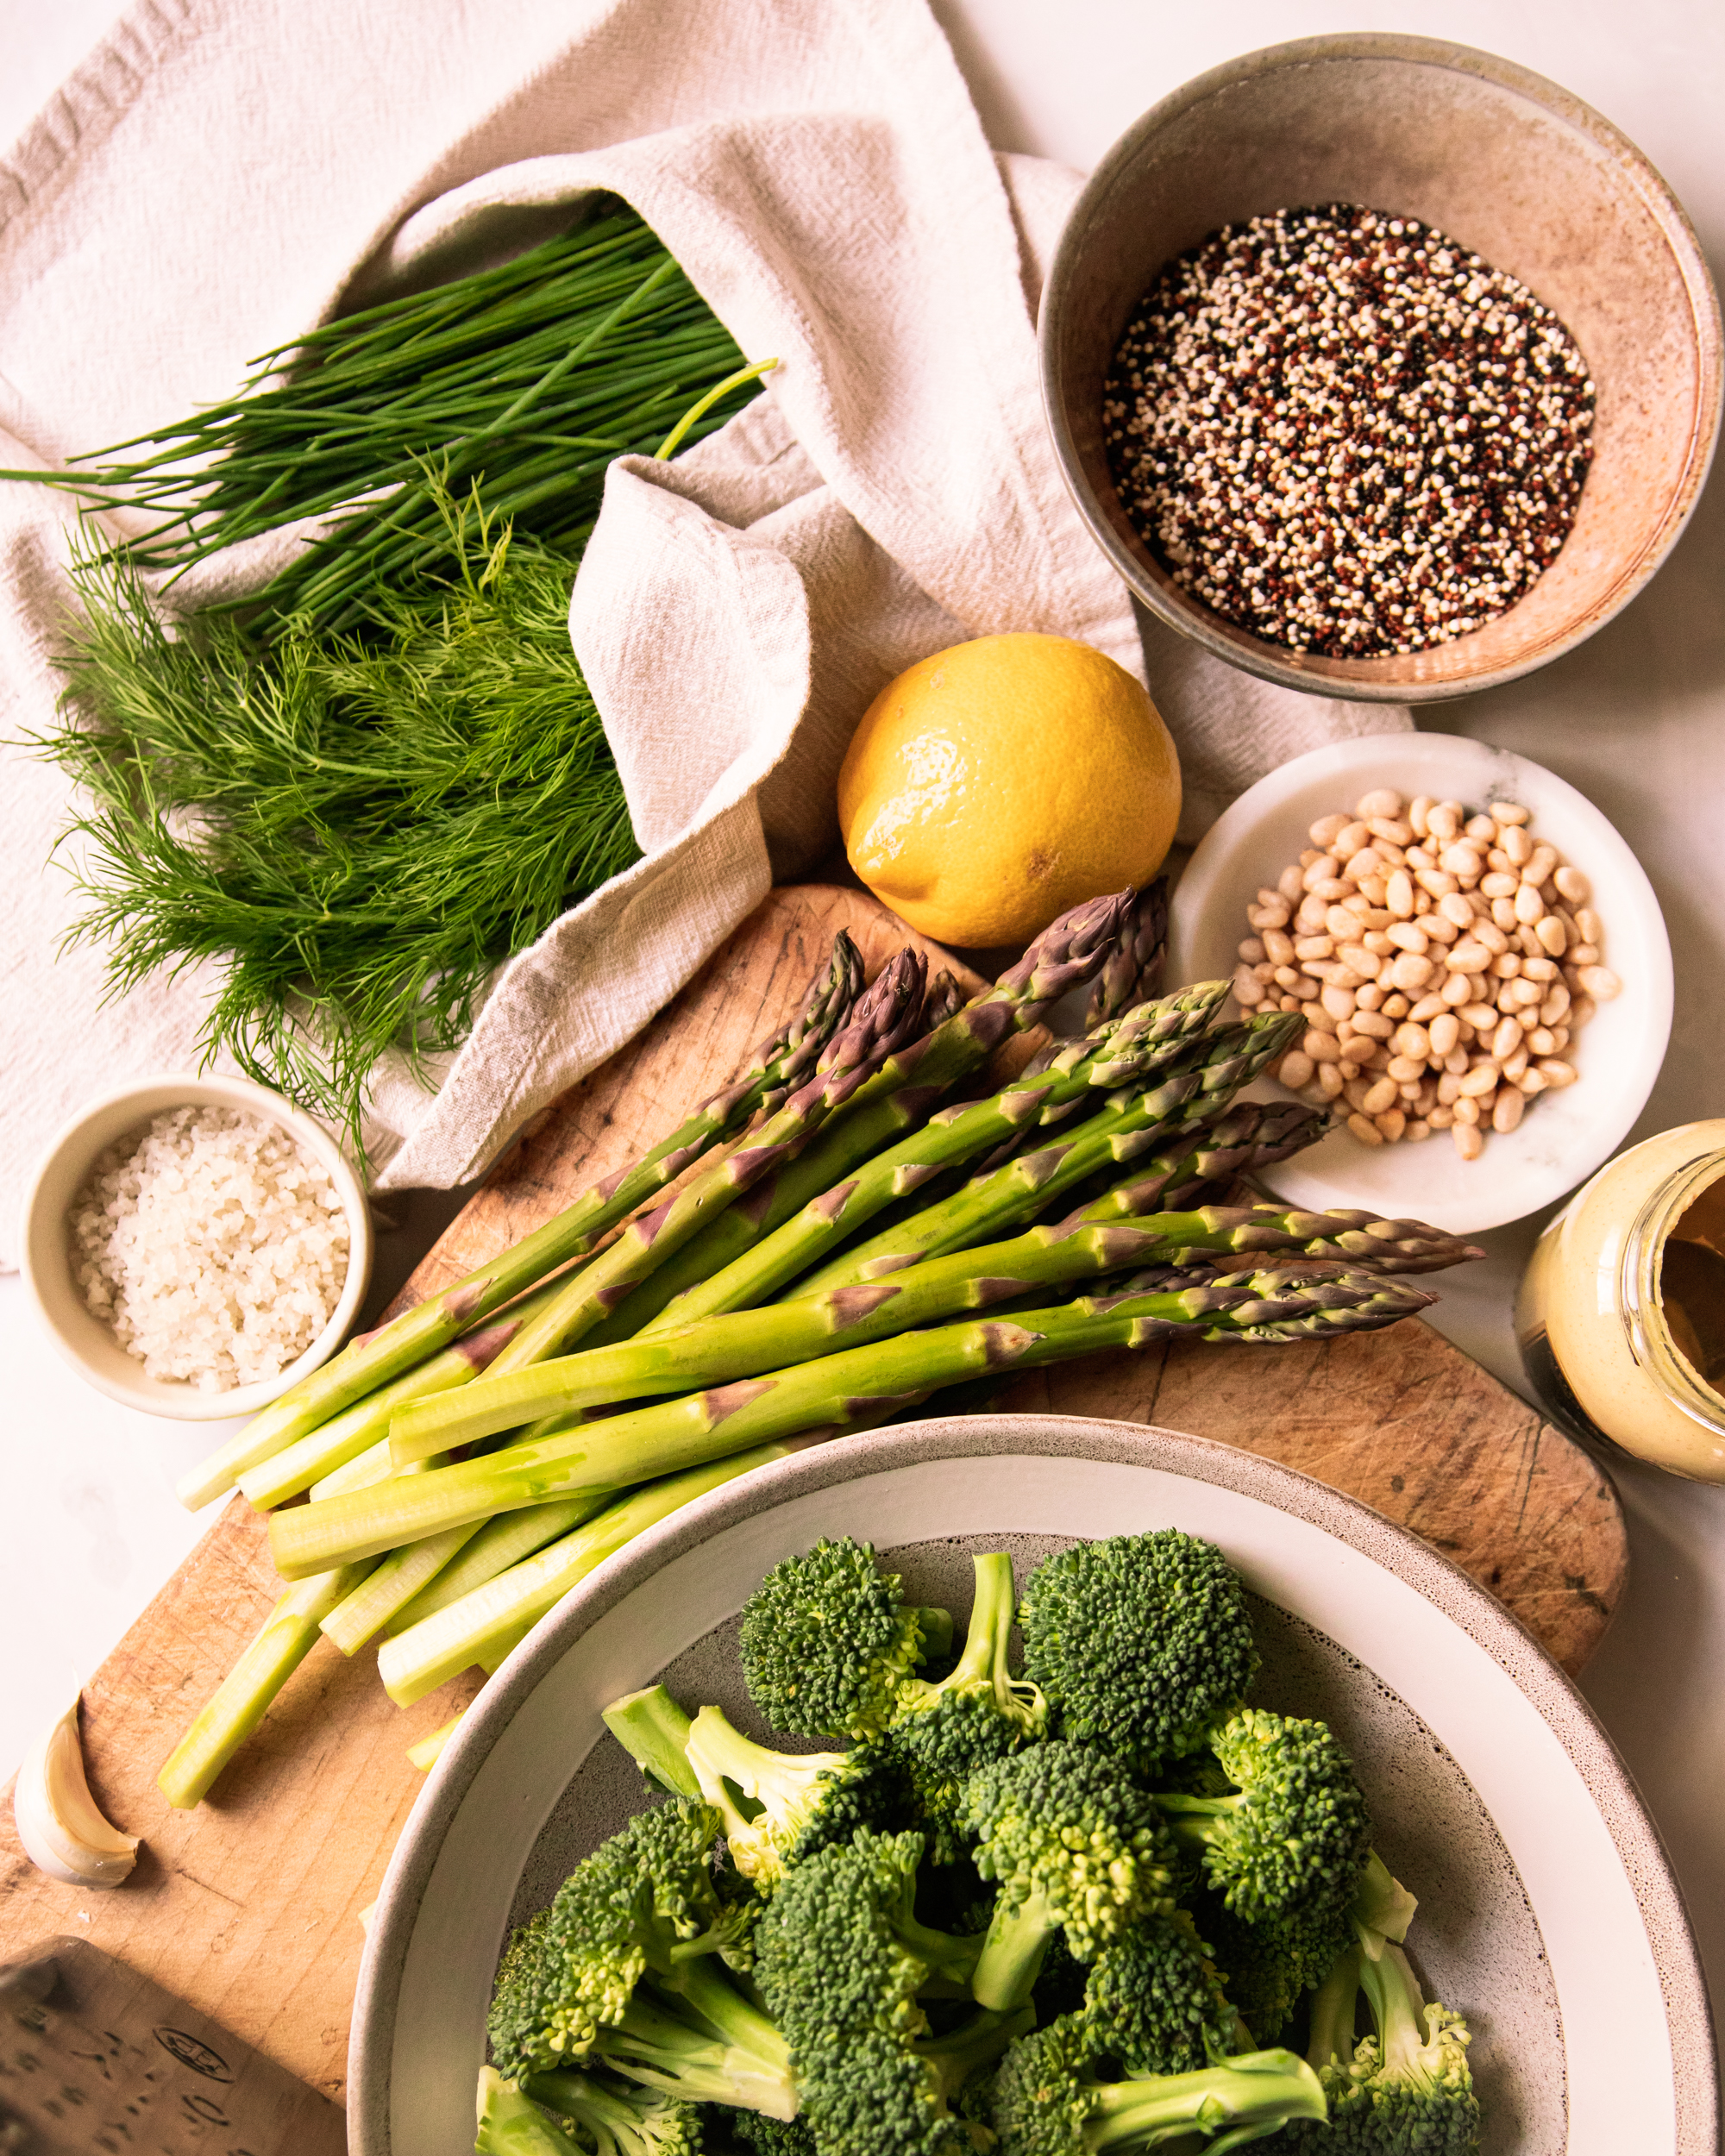 Overhead image shows ingredients for a green love quinoa salad on a worn wood and mottled white background.